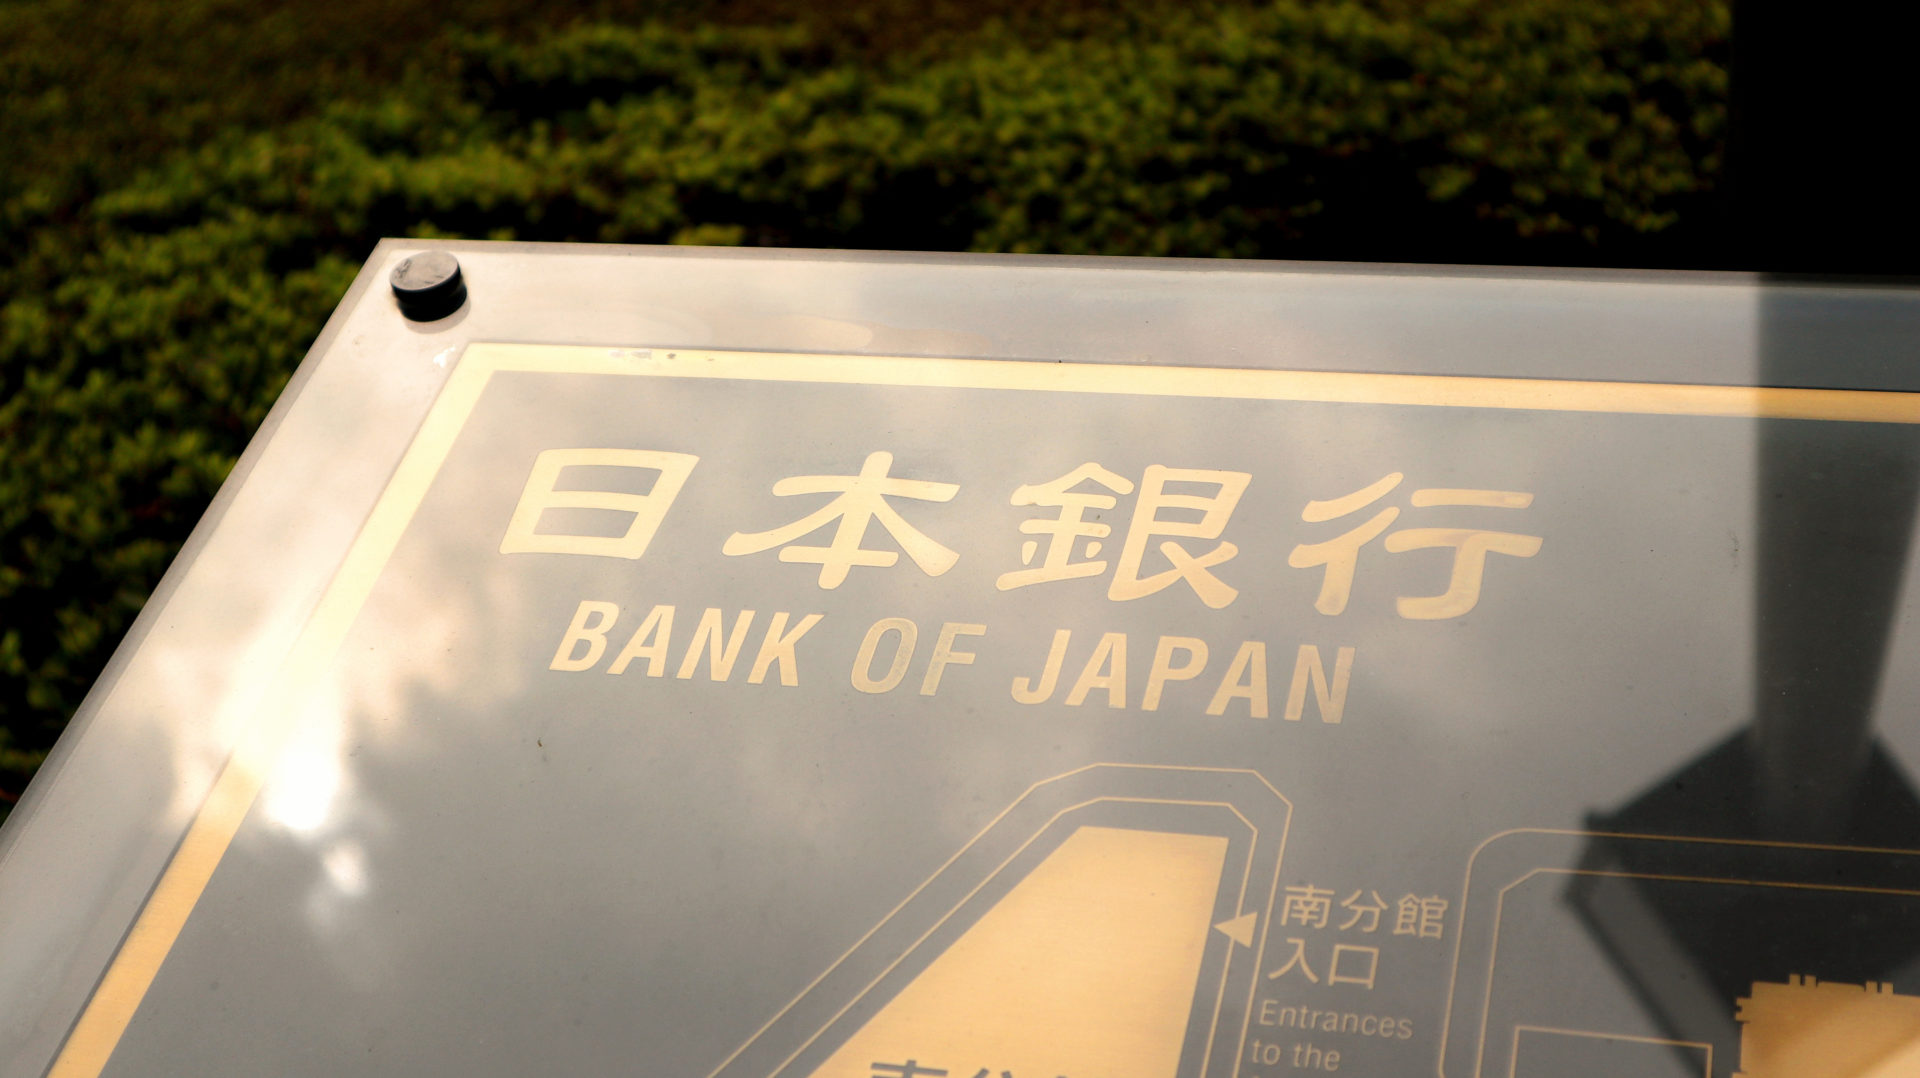 Bank of Japan Says Its Role Would Be 'Sharply Reduced' by Mainstream Cryptocurrency